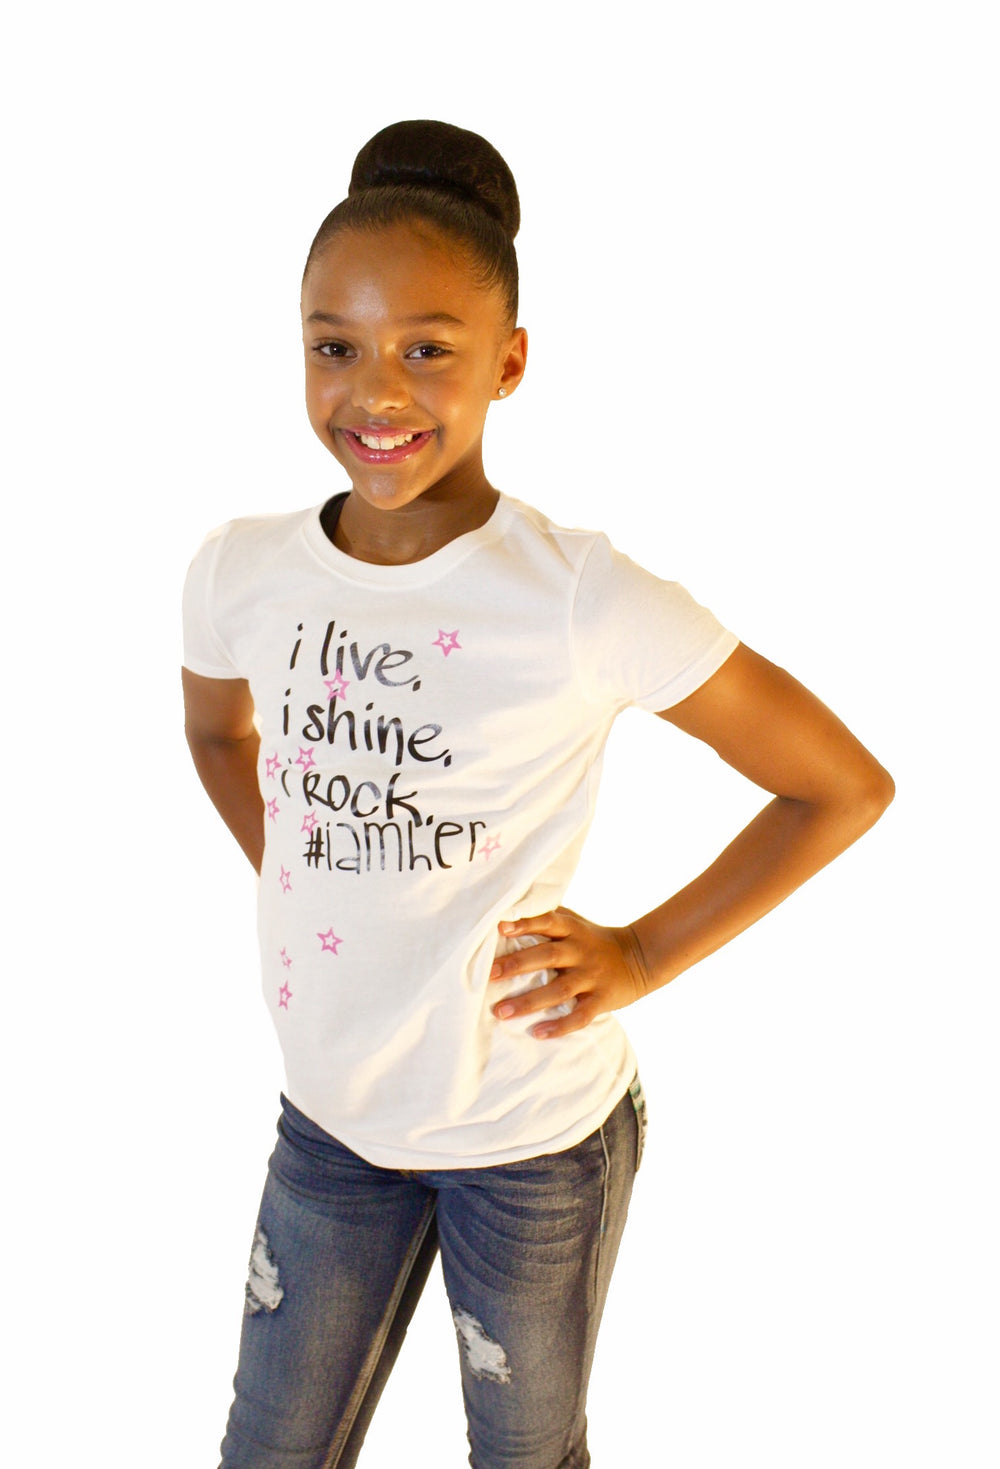 I Live. I Shine. I Rock! – Tees for Girls - I AM HER Apparel, LLC